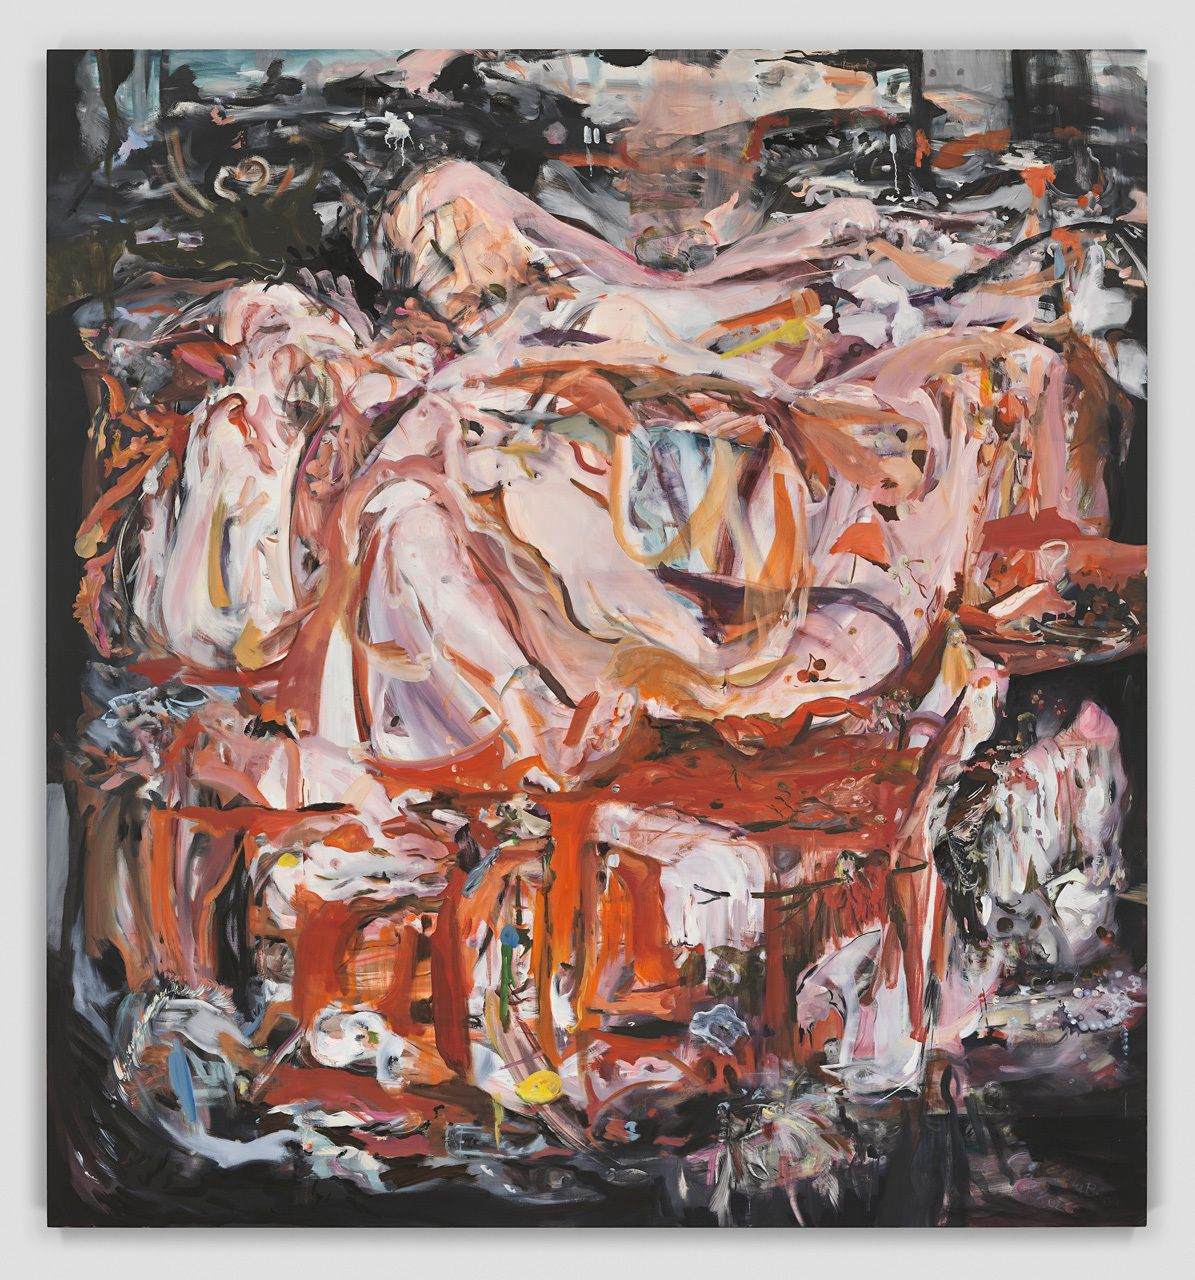 Cecily Brown, When this kiss is over, 2020